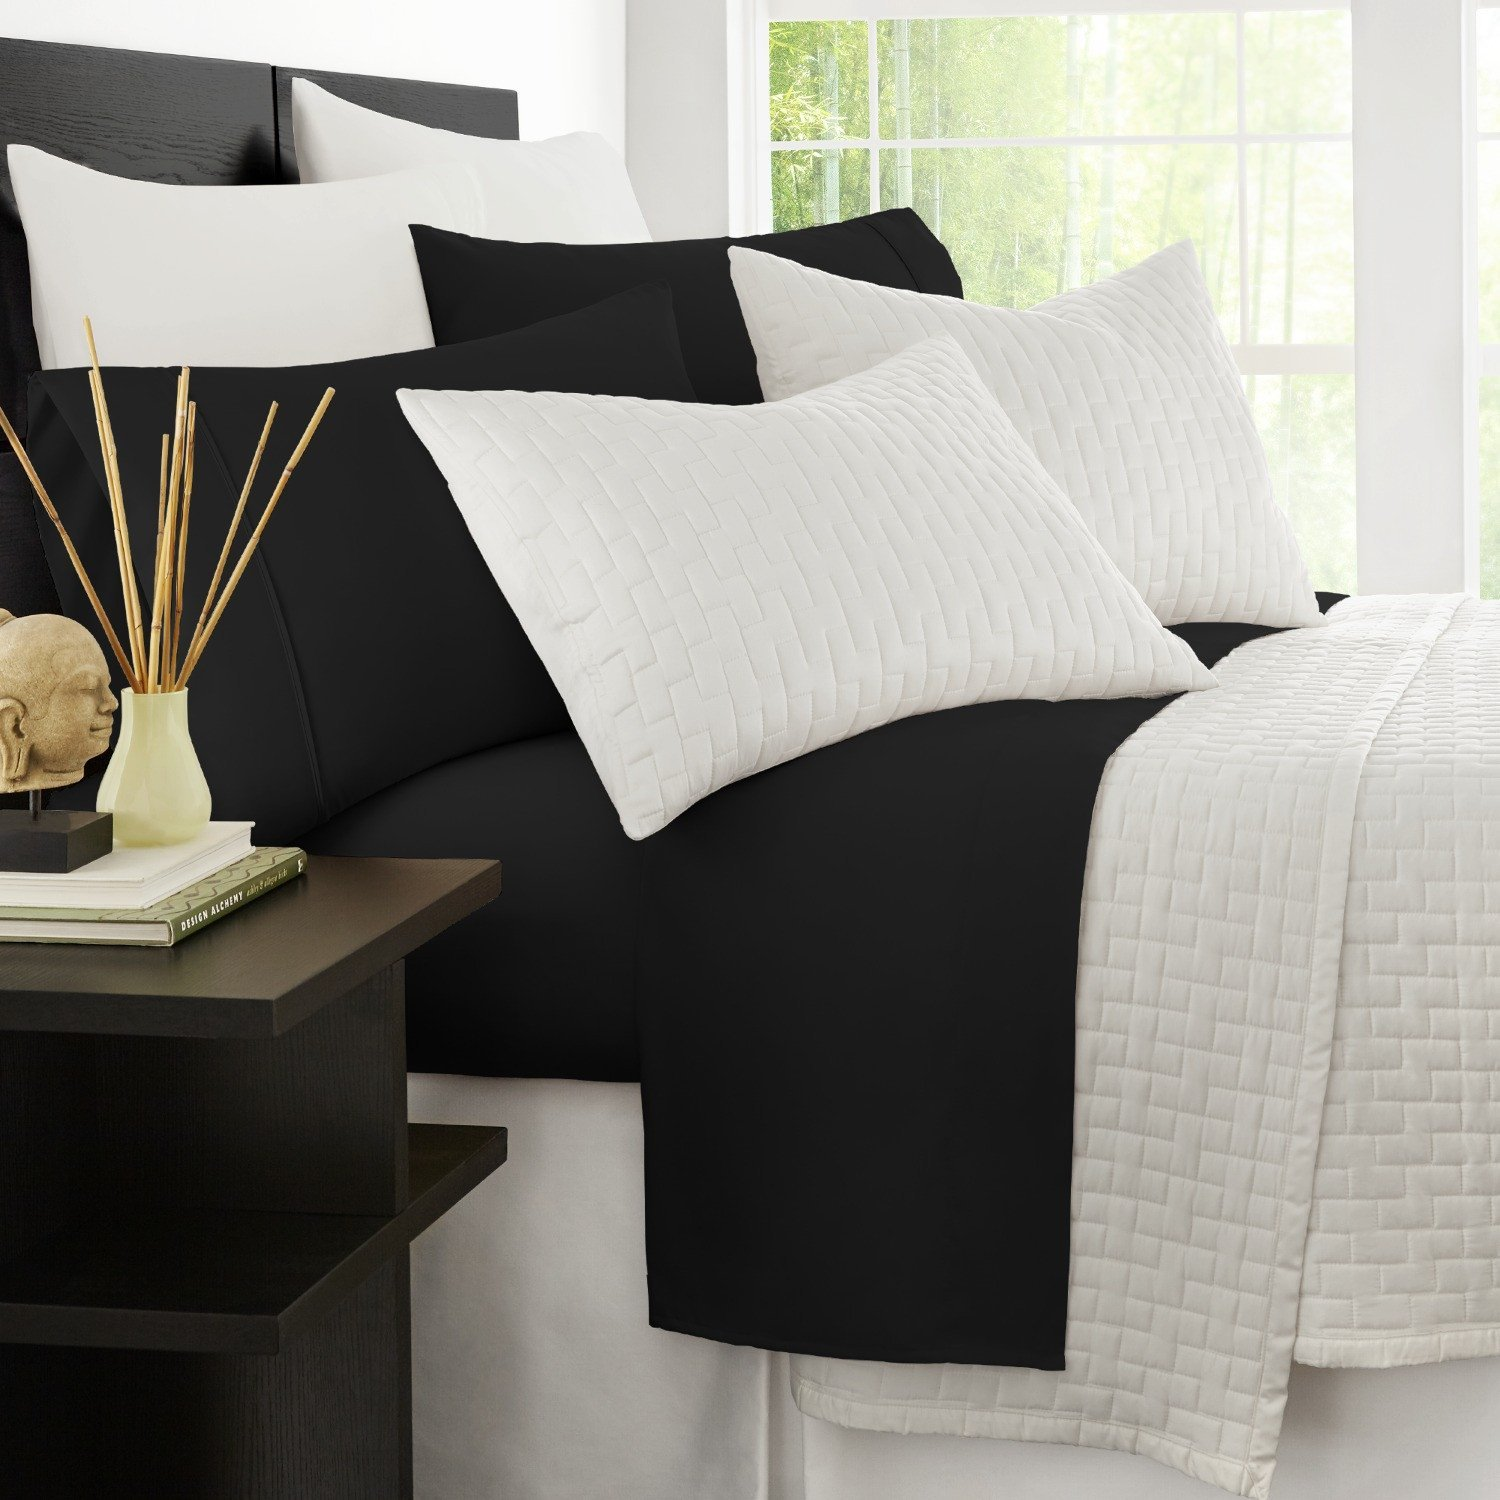 Zen Bamboo Luxury 1500 Series Bed Sheets - Eco-Friendly, Hypoallergenic and Wrinkle Resistant Rayon Derived from Bamboo - 4-Piece - California King - Black